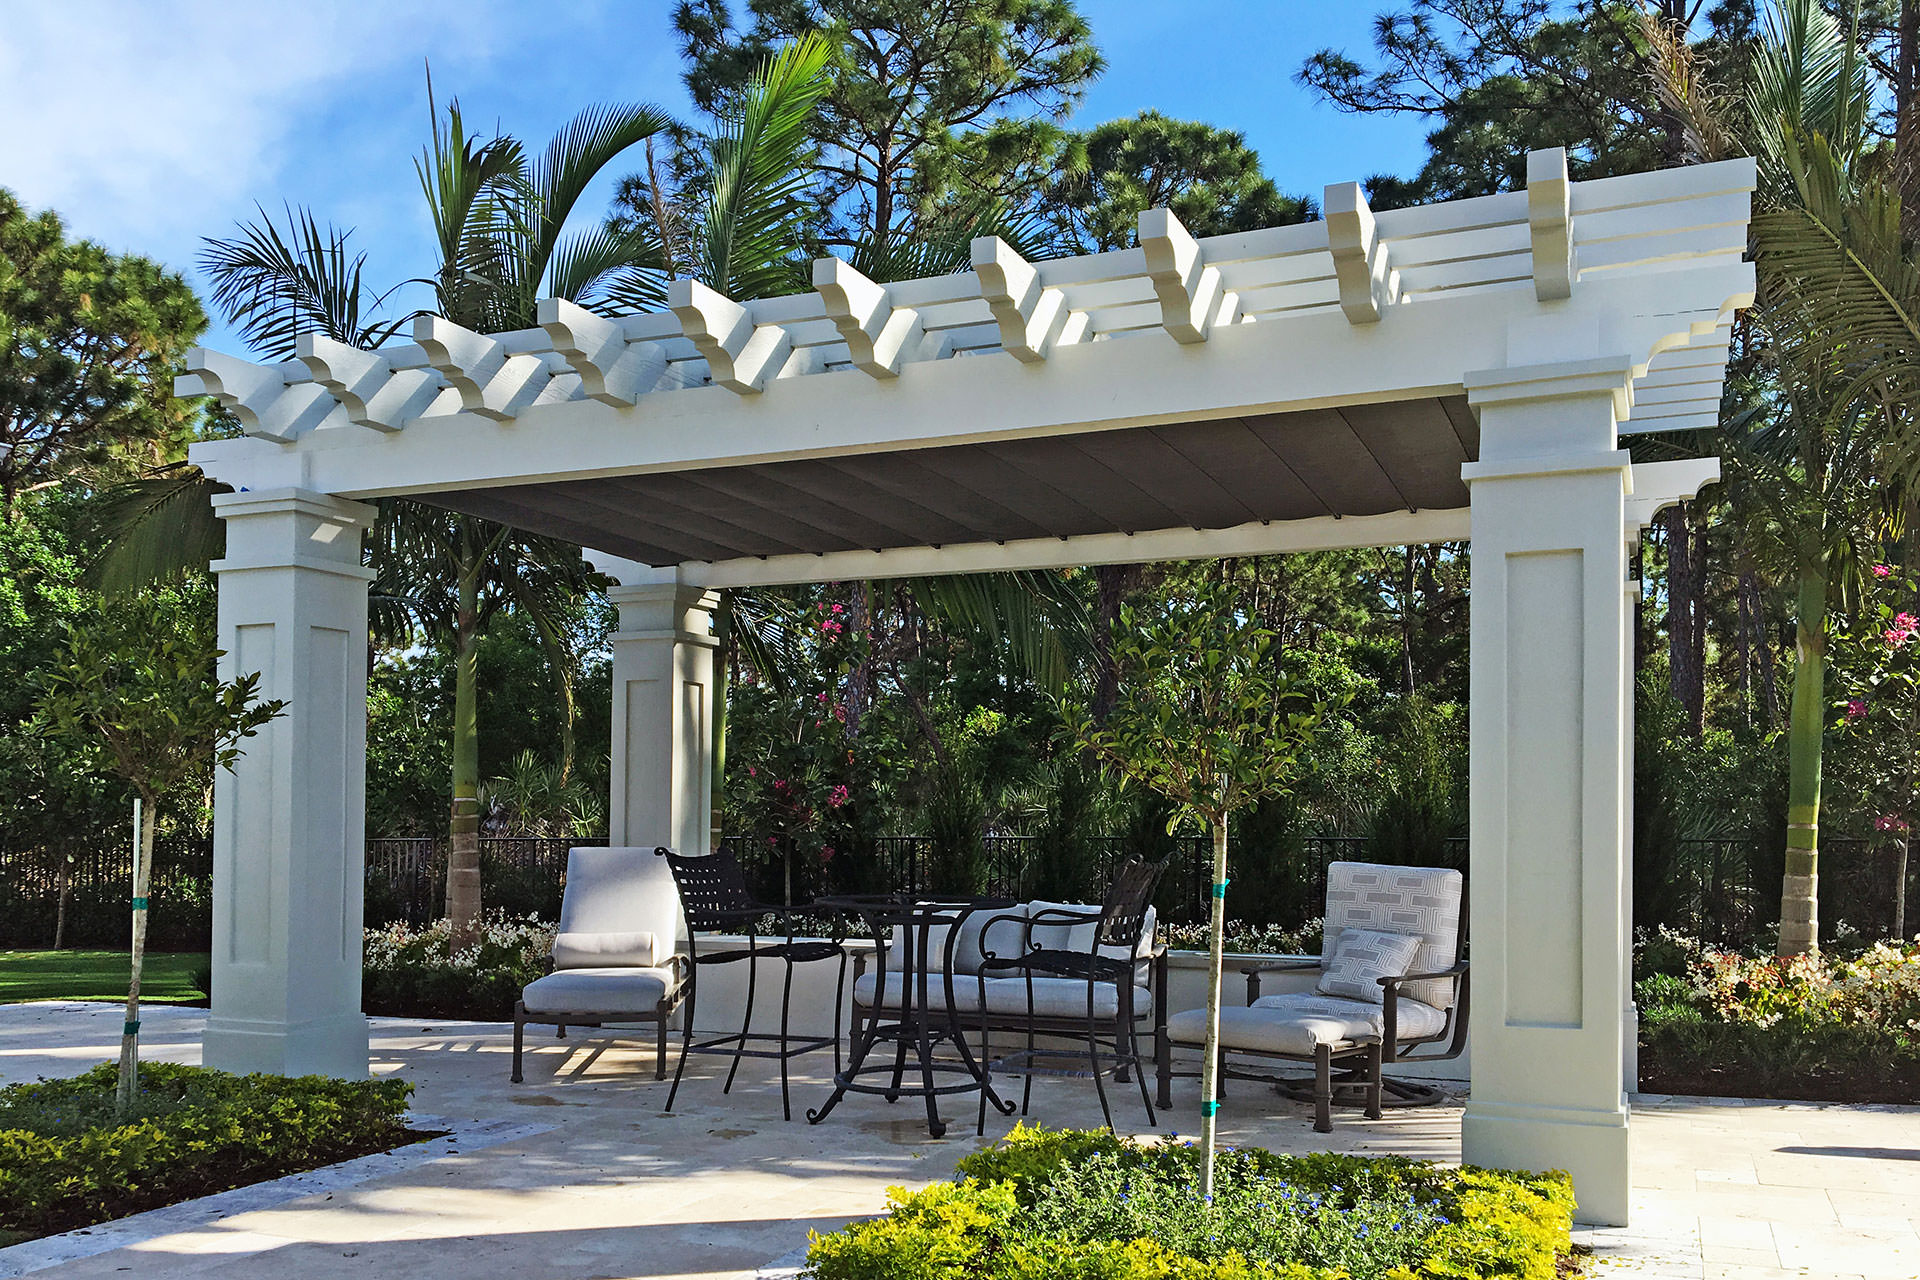 Retractable Shade Palm Beach Gardens Shadefx